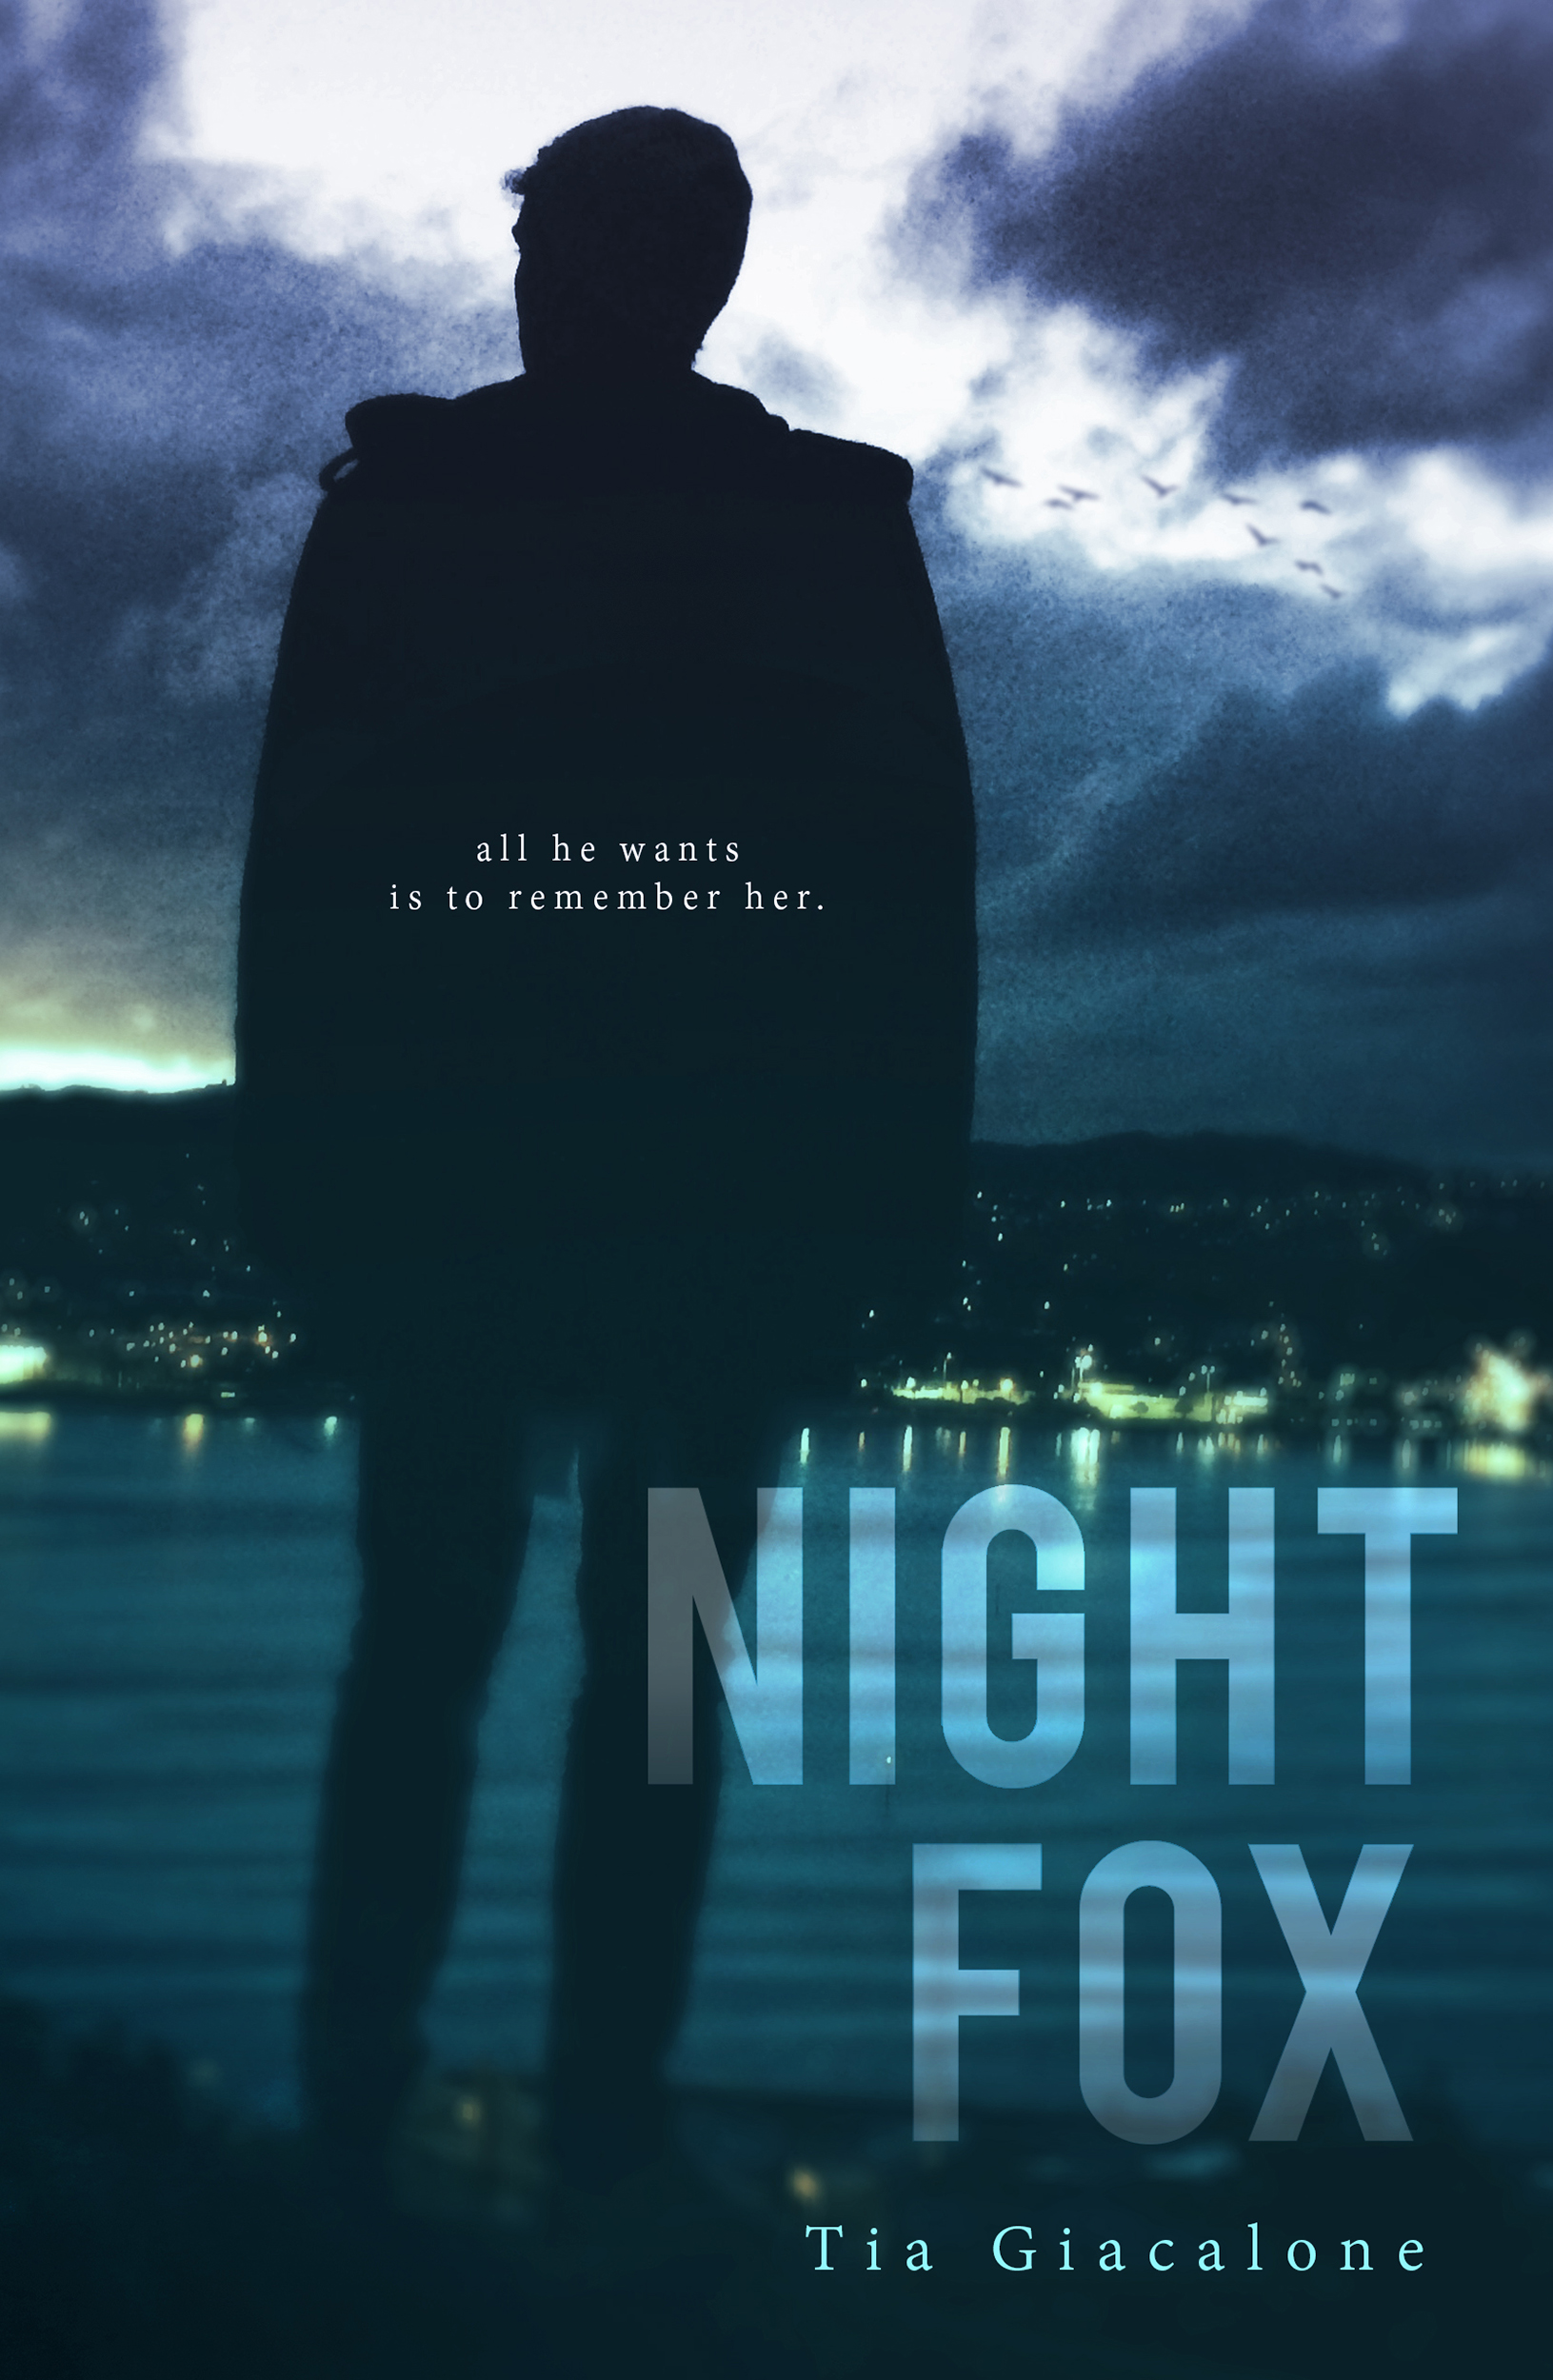 Beckett Fox lives his life on the edge between danger and responsibility - - And that's all he's ever known… until he meets Avery. Now, time at home is more appealing than the do-or-die future he'd always pictured for himself.Fox has everything he's ever wanted. But he knows better than anyone that life can change direction faster than the wind.When an accident threatens to destroy his entire world, Fox will have to choose between fighting for what he loves or letting his past dictate his future.How much strength does it take to move forward when history seems determined to knock you down? And how do you find the path to redemption when you don't even recognize your own life?A college age, New Adult Romance- for readers 18+ due to mature themes